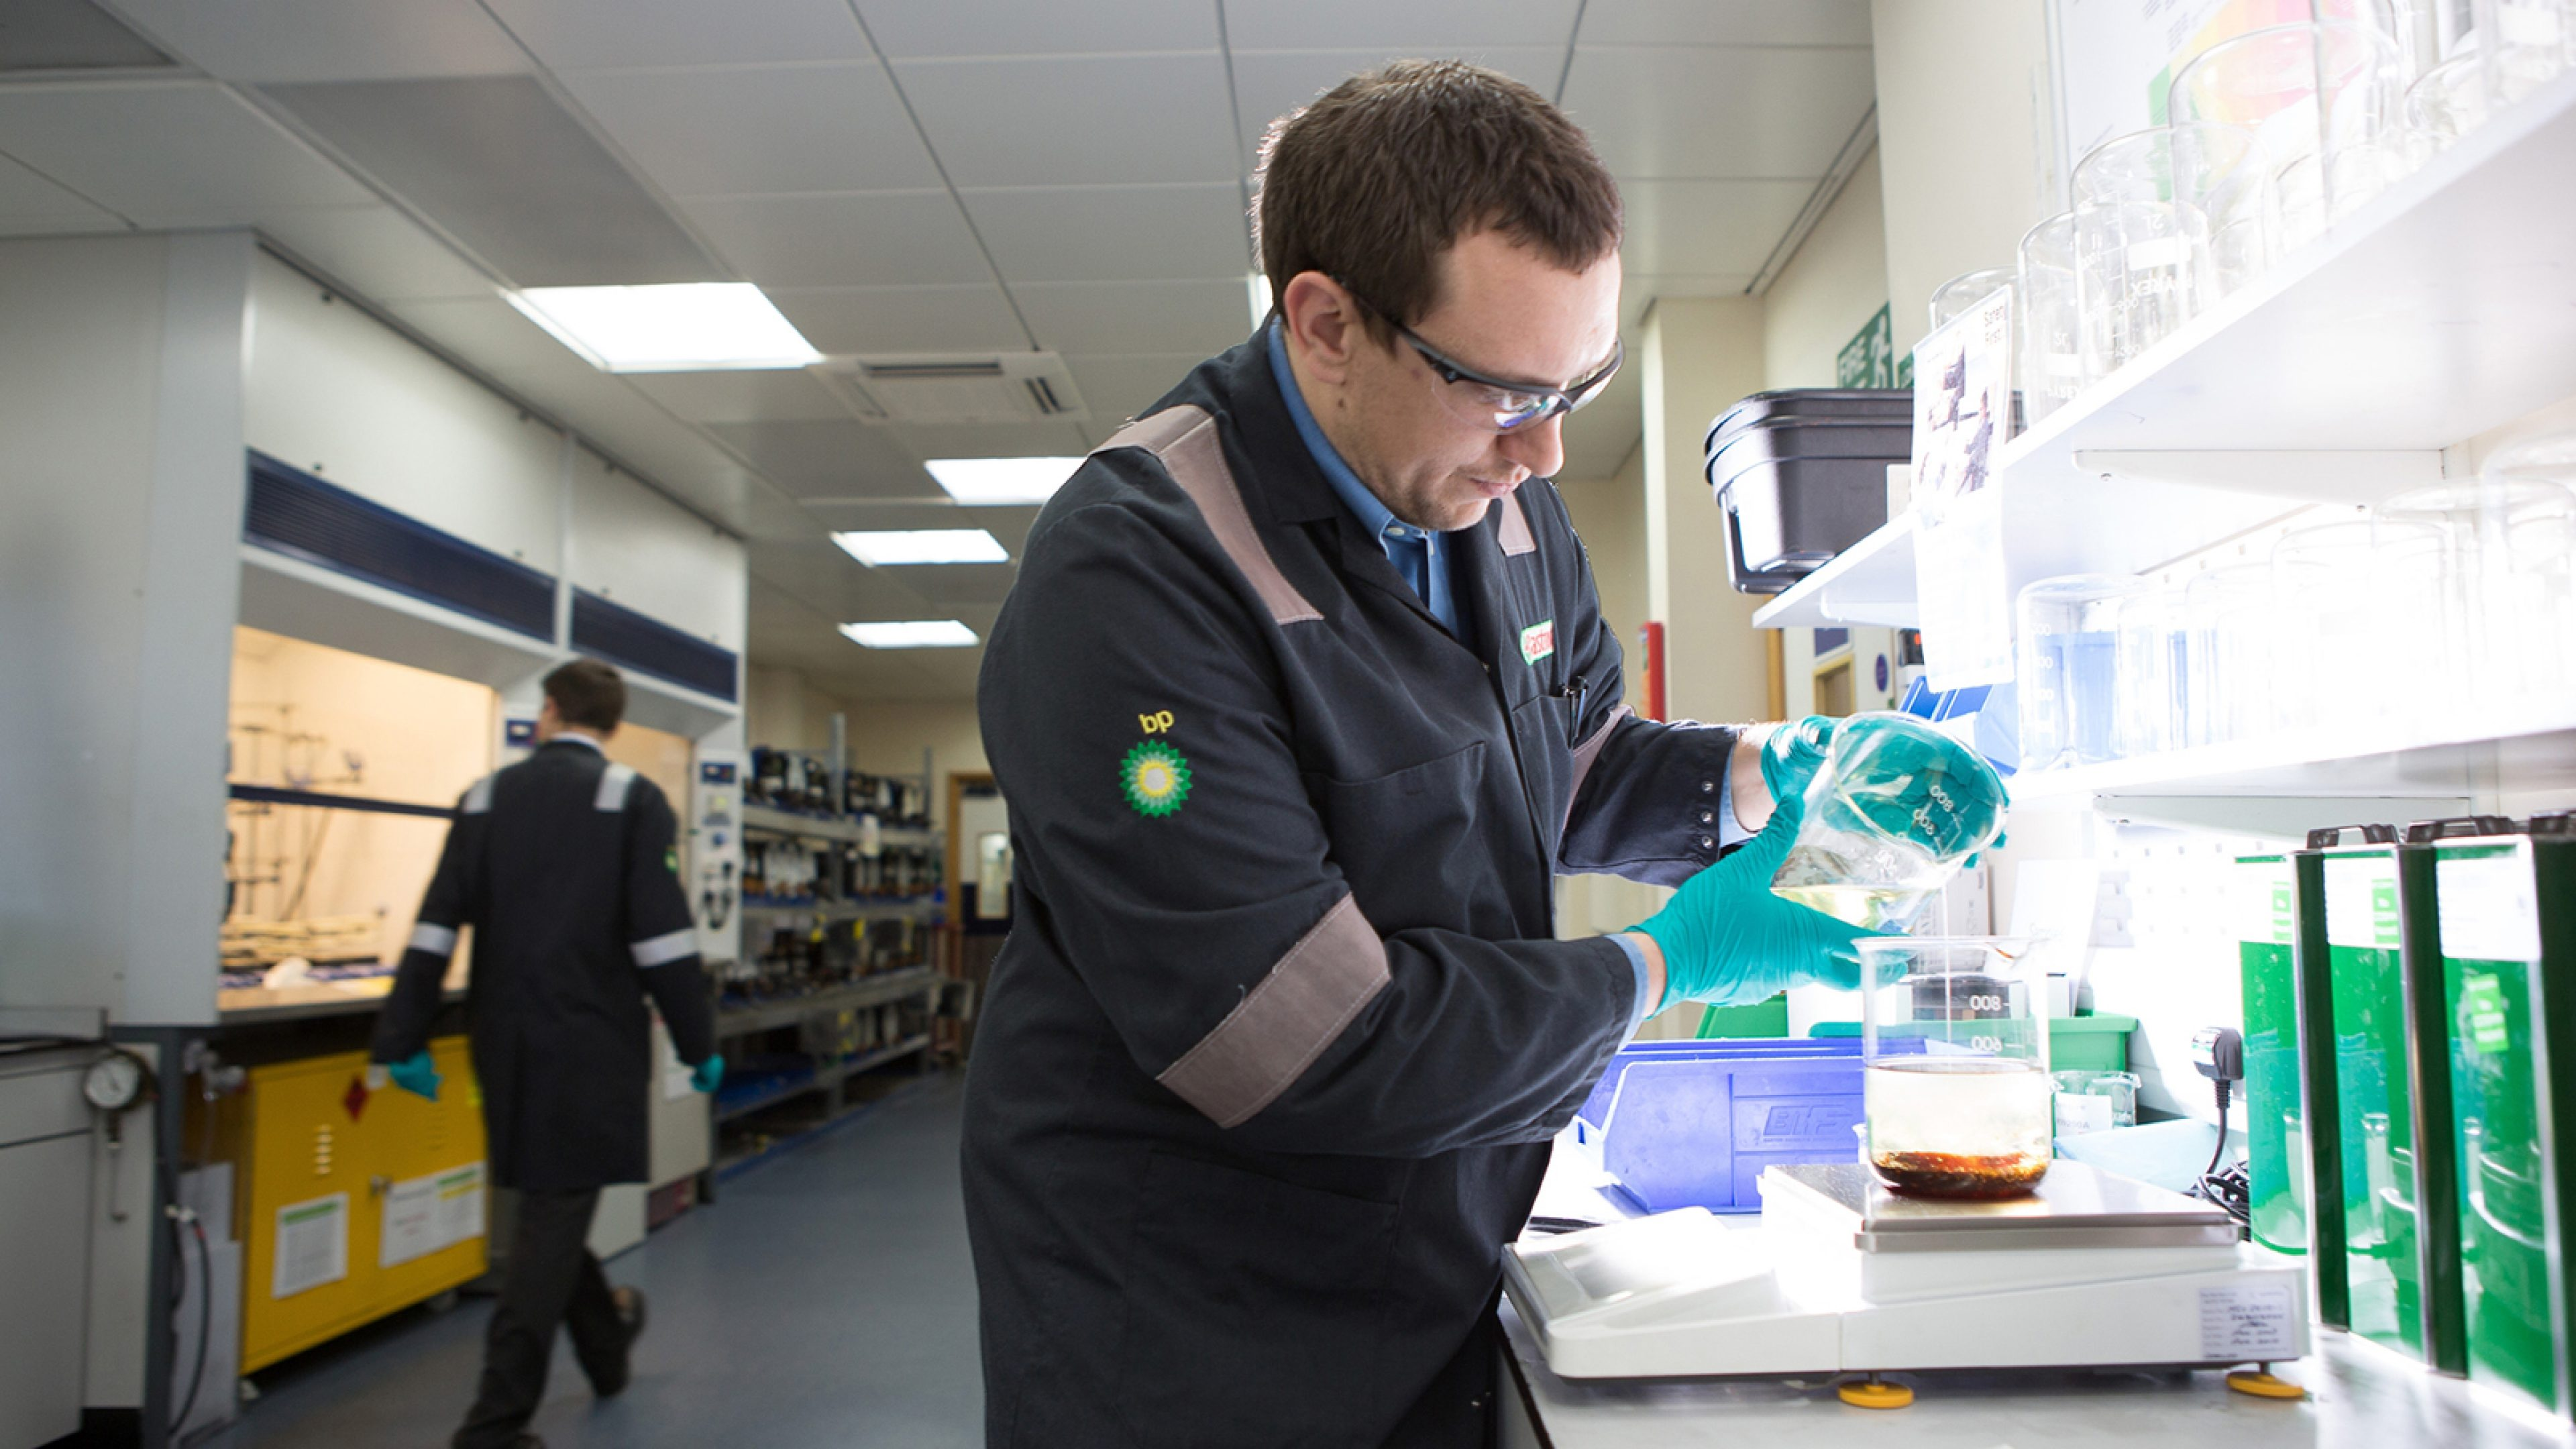 Technician analyzing samples in laboratory